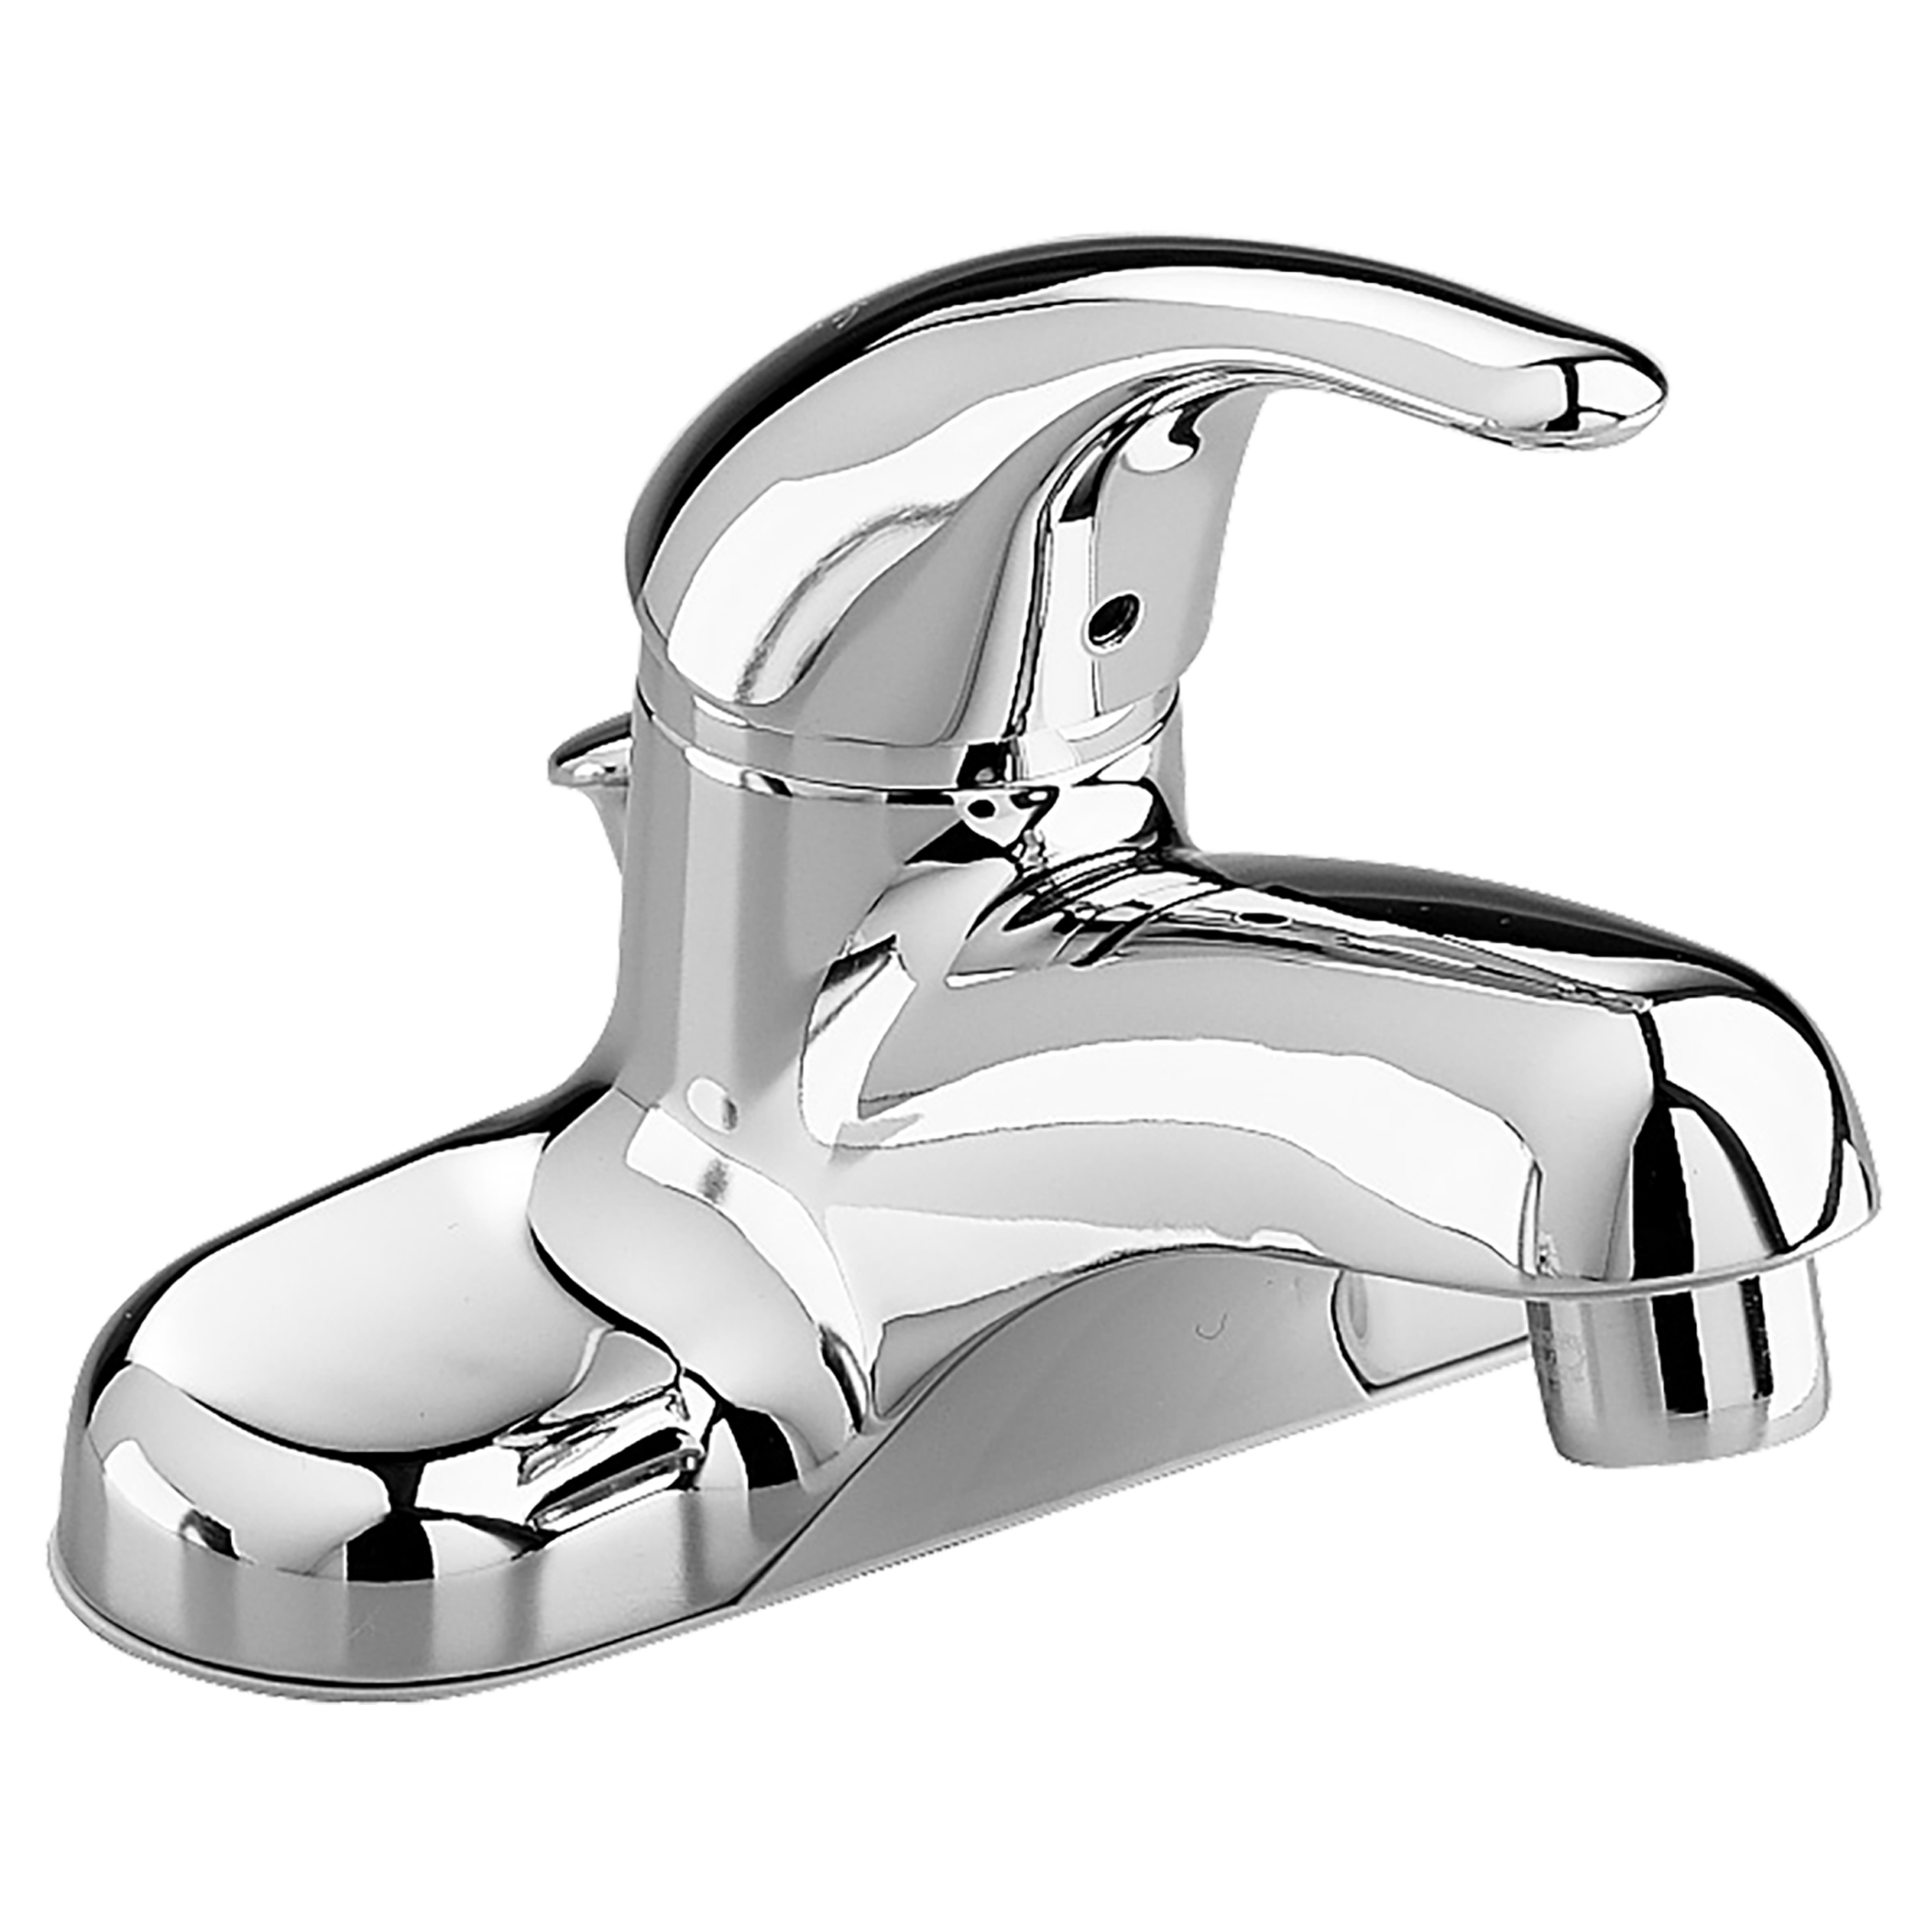 Bathroom clipart bathroom accessory. Centerset faucets american standard